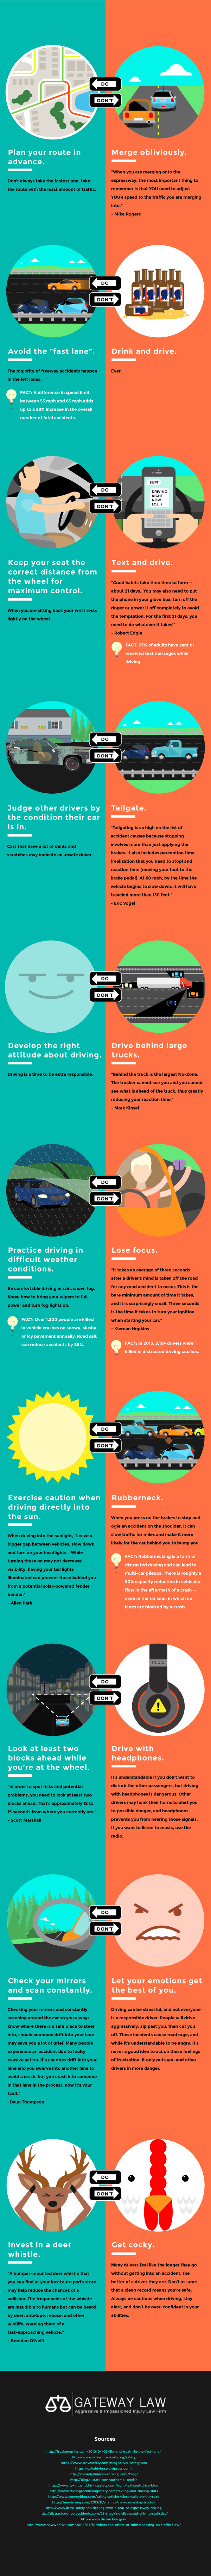 The Do's and Don'ts of Driving